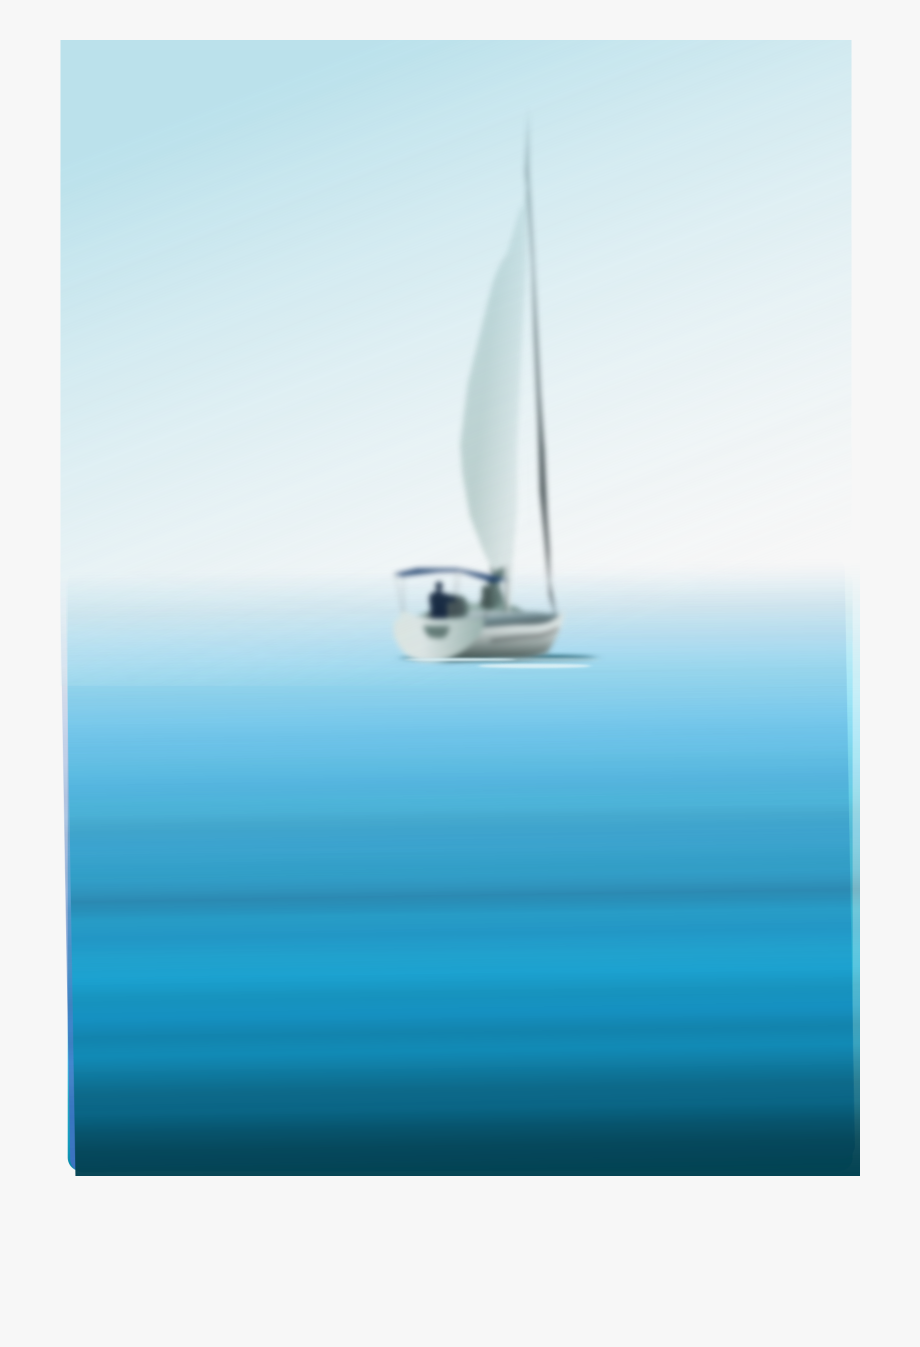 svg royalty free Png freeuse large boat. Yacht clipart fishing ocean